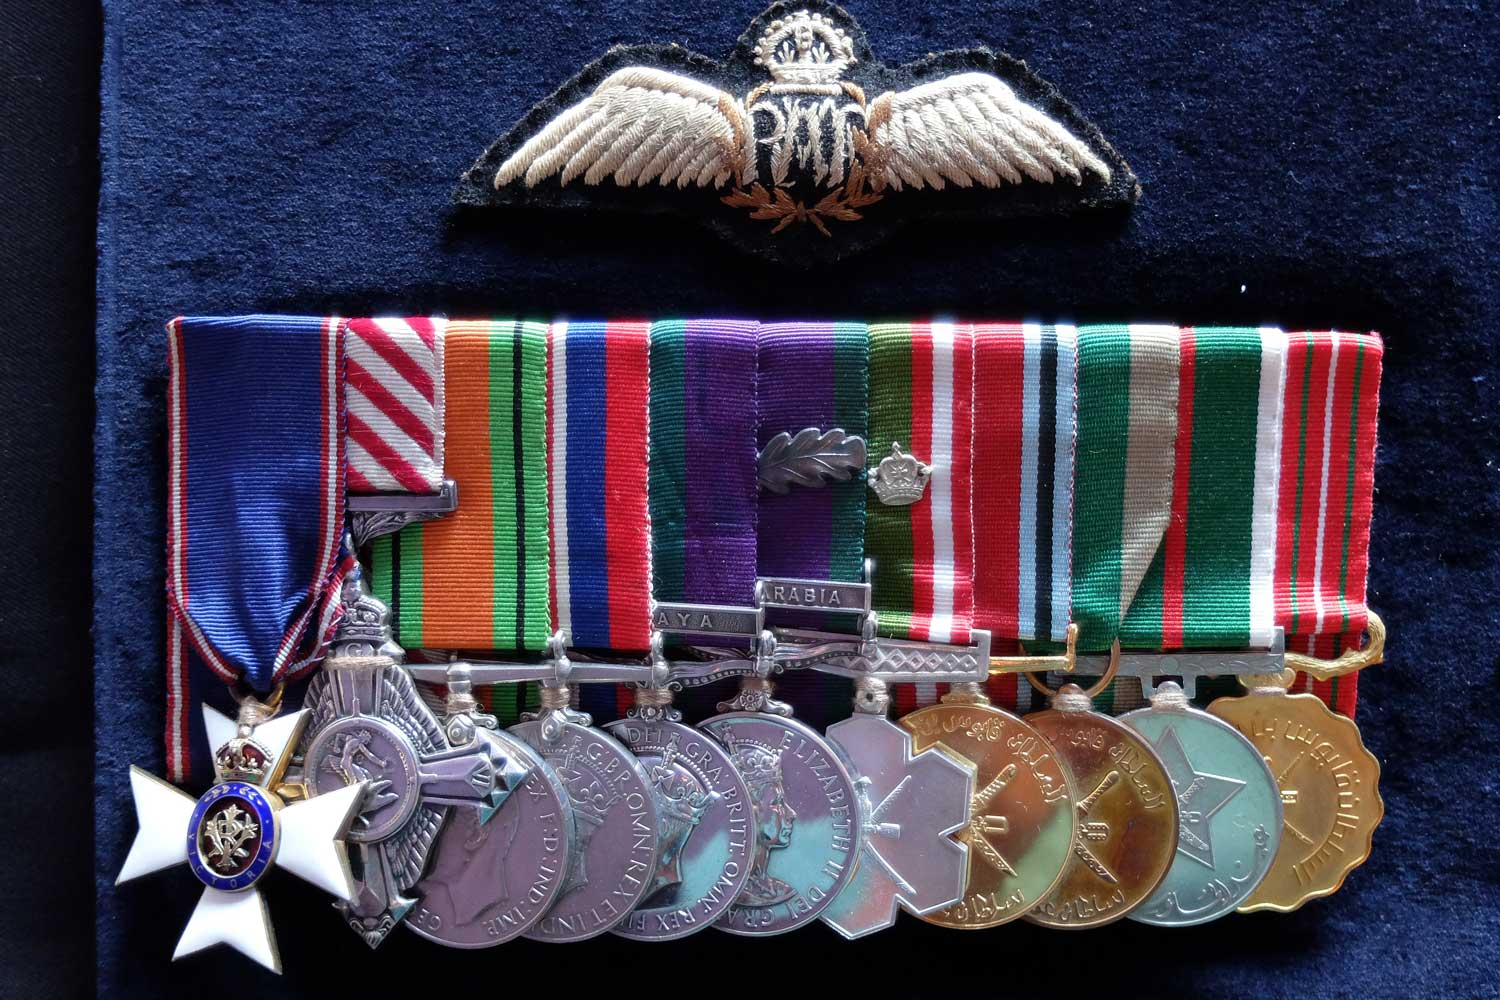 Group Captain Wood's Medals